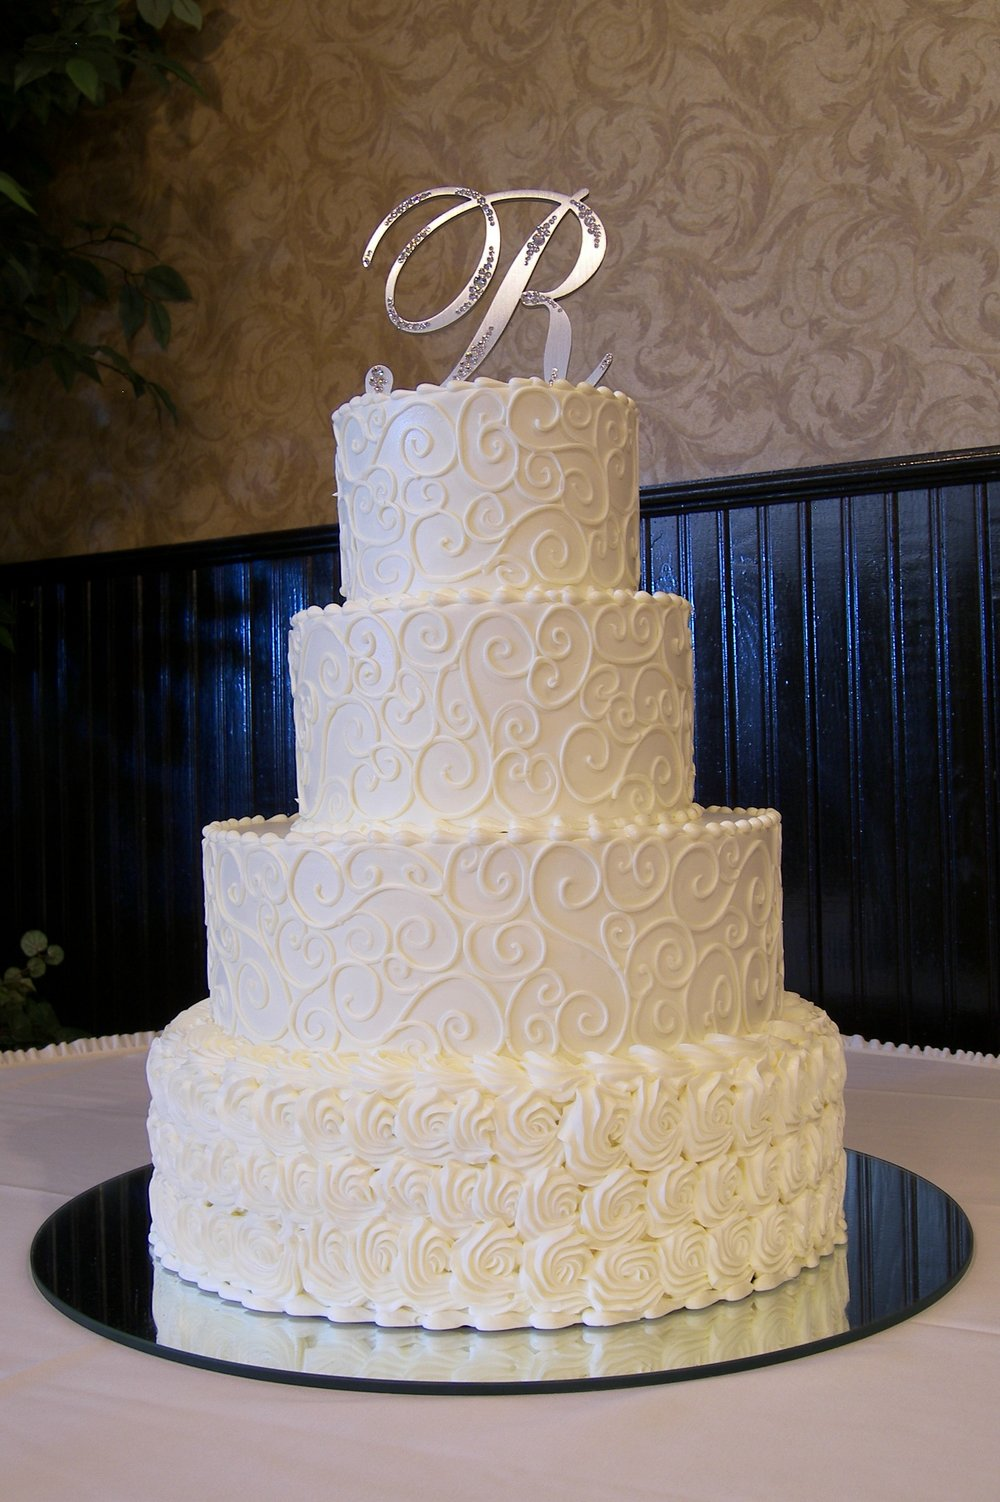 Wedding cake art design center buttercream our delicious buttercream cakes feature our decadent frosting between the cake layers and elegantly junglespirit Gallery